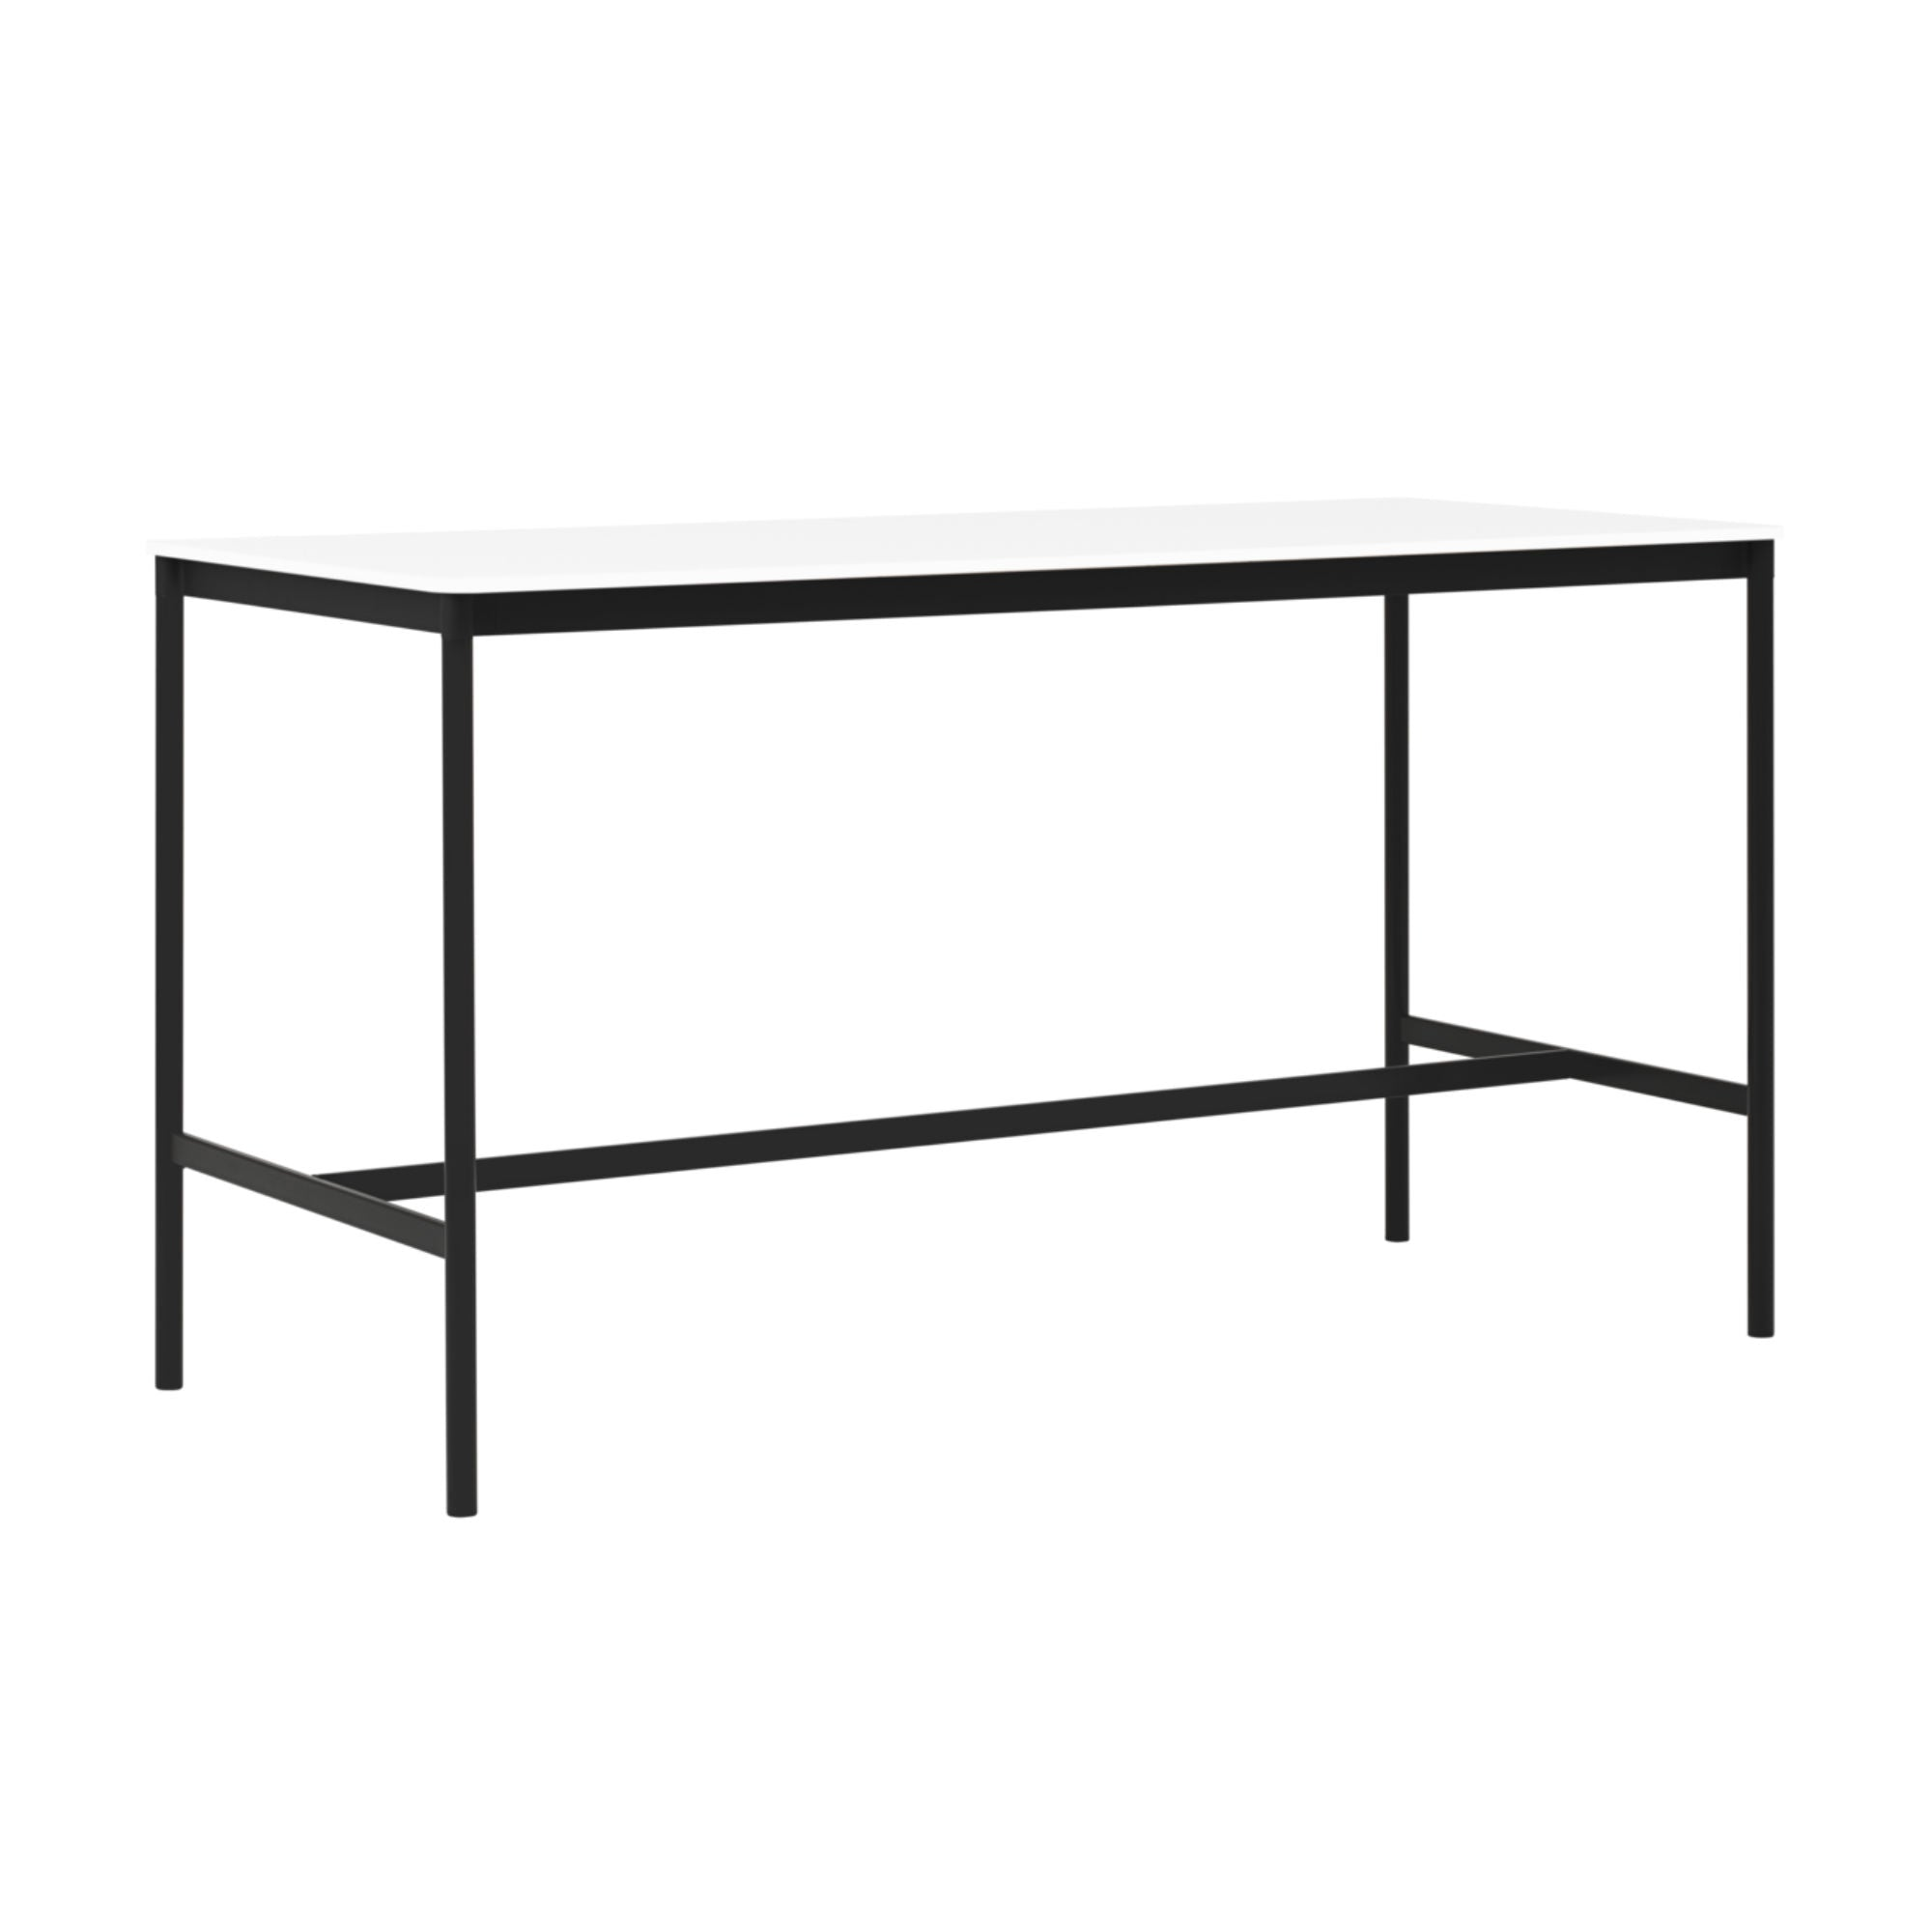 Muuto Base High Table 190x85 h:105cm , White Laminate/White ABS/Black